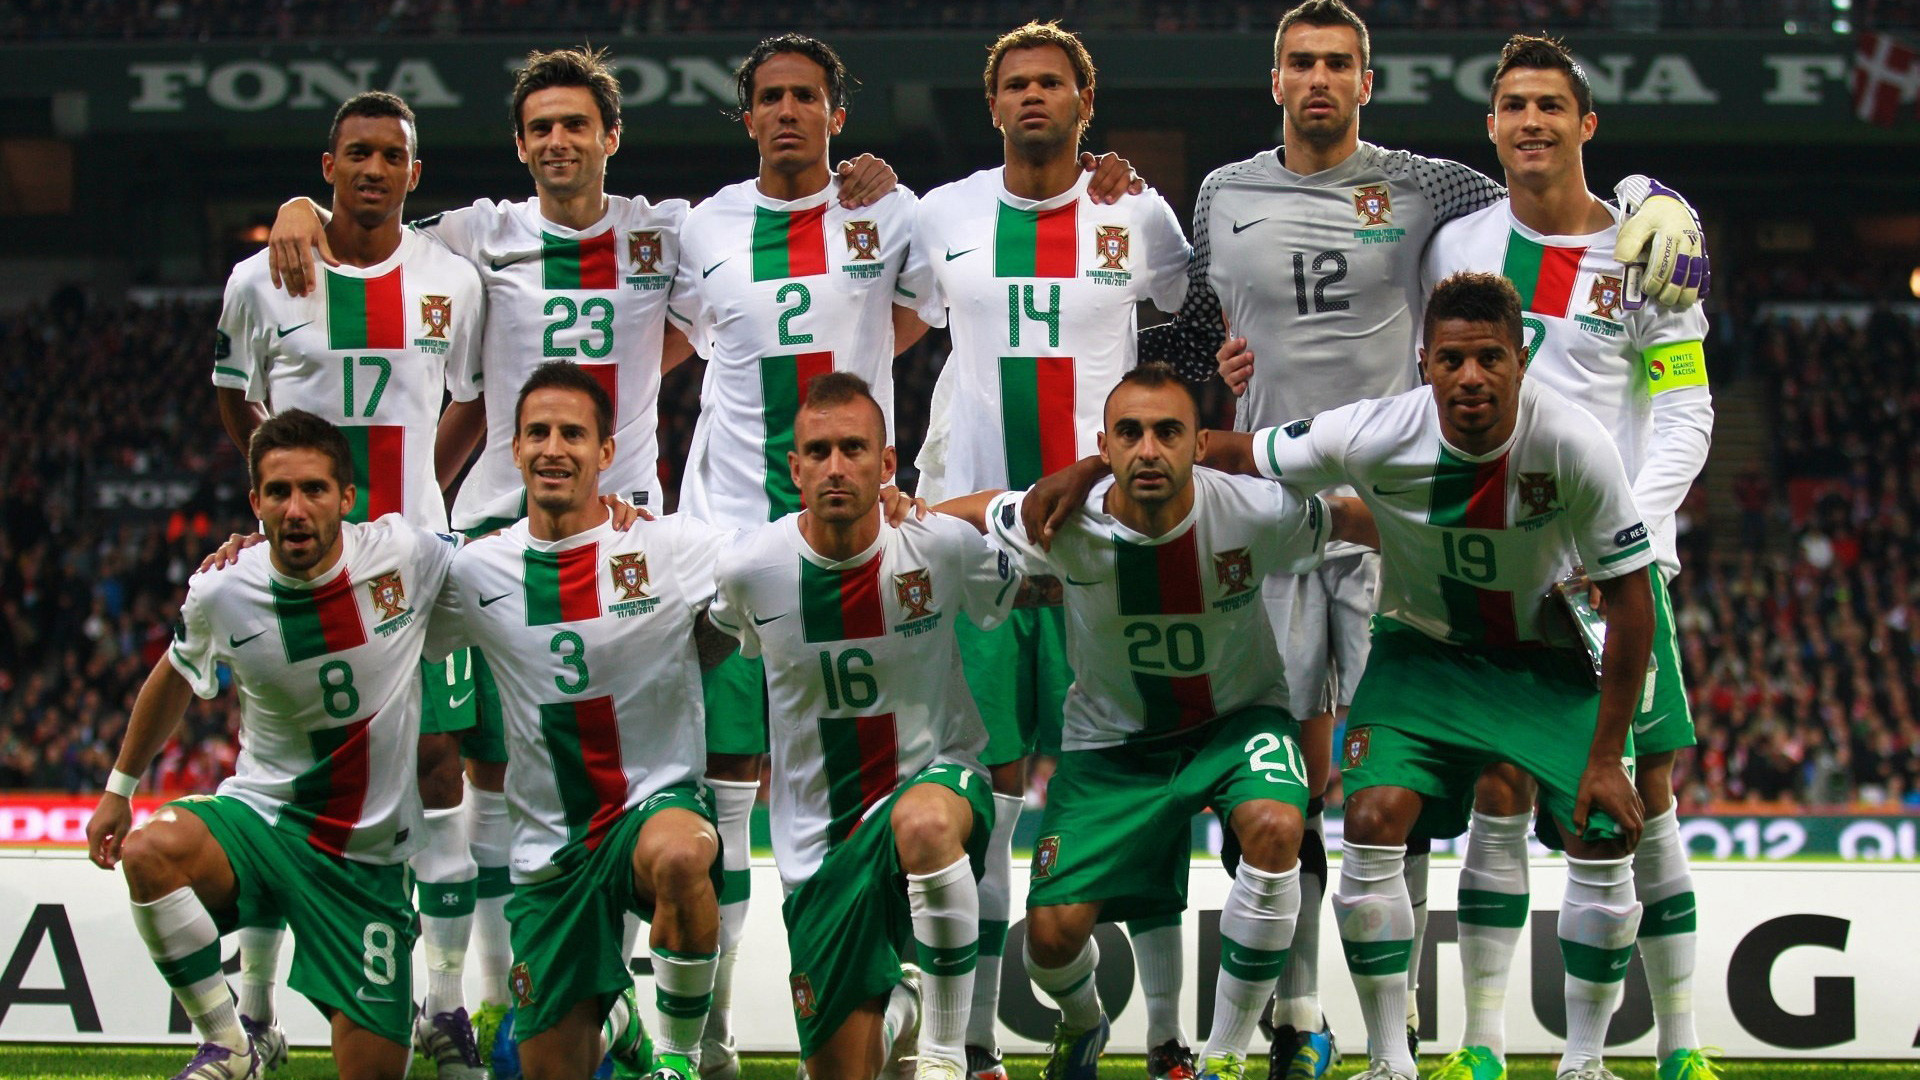 Mexico Soccer Wallpaper 2018 66 Images